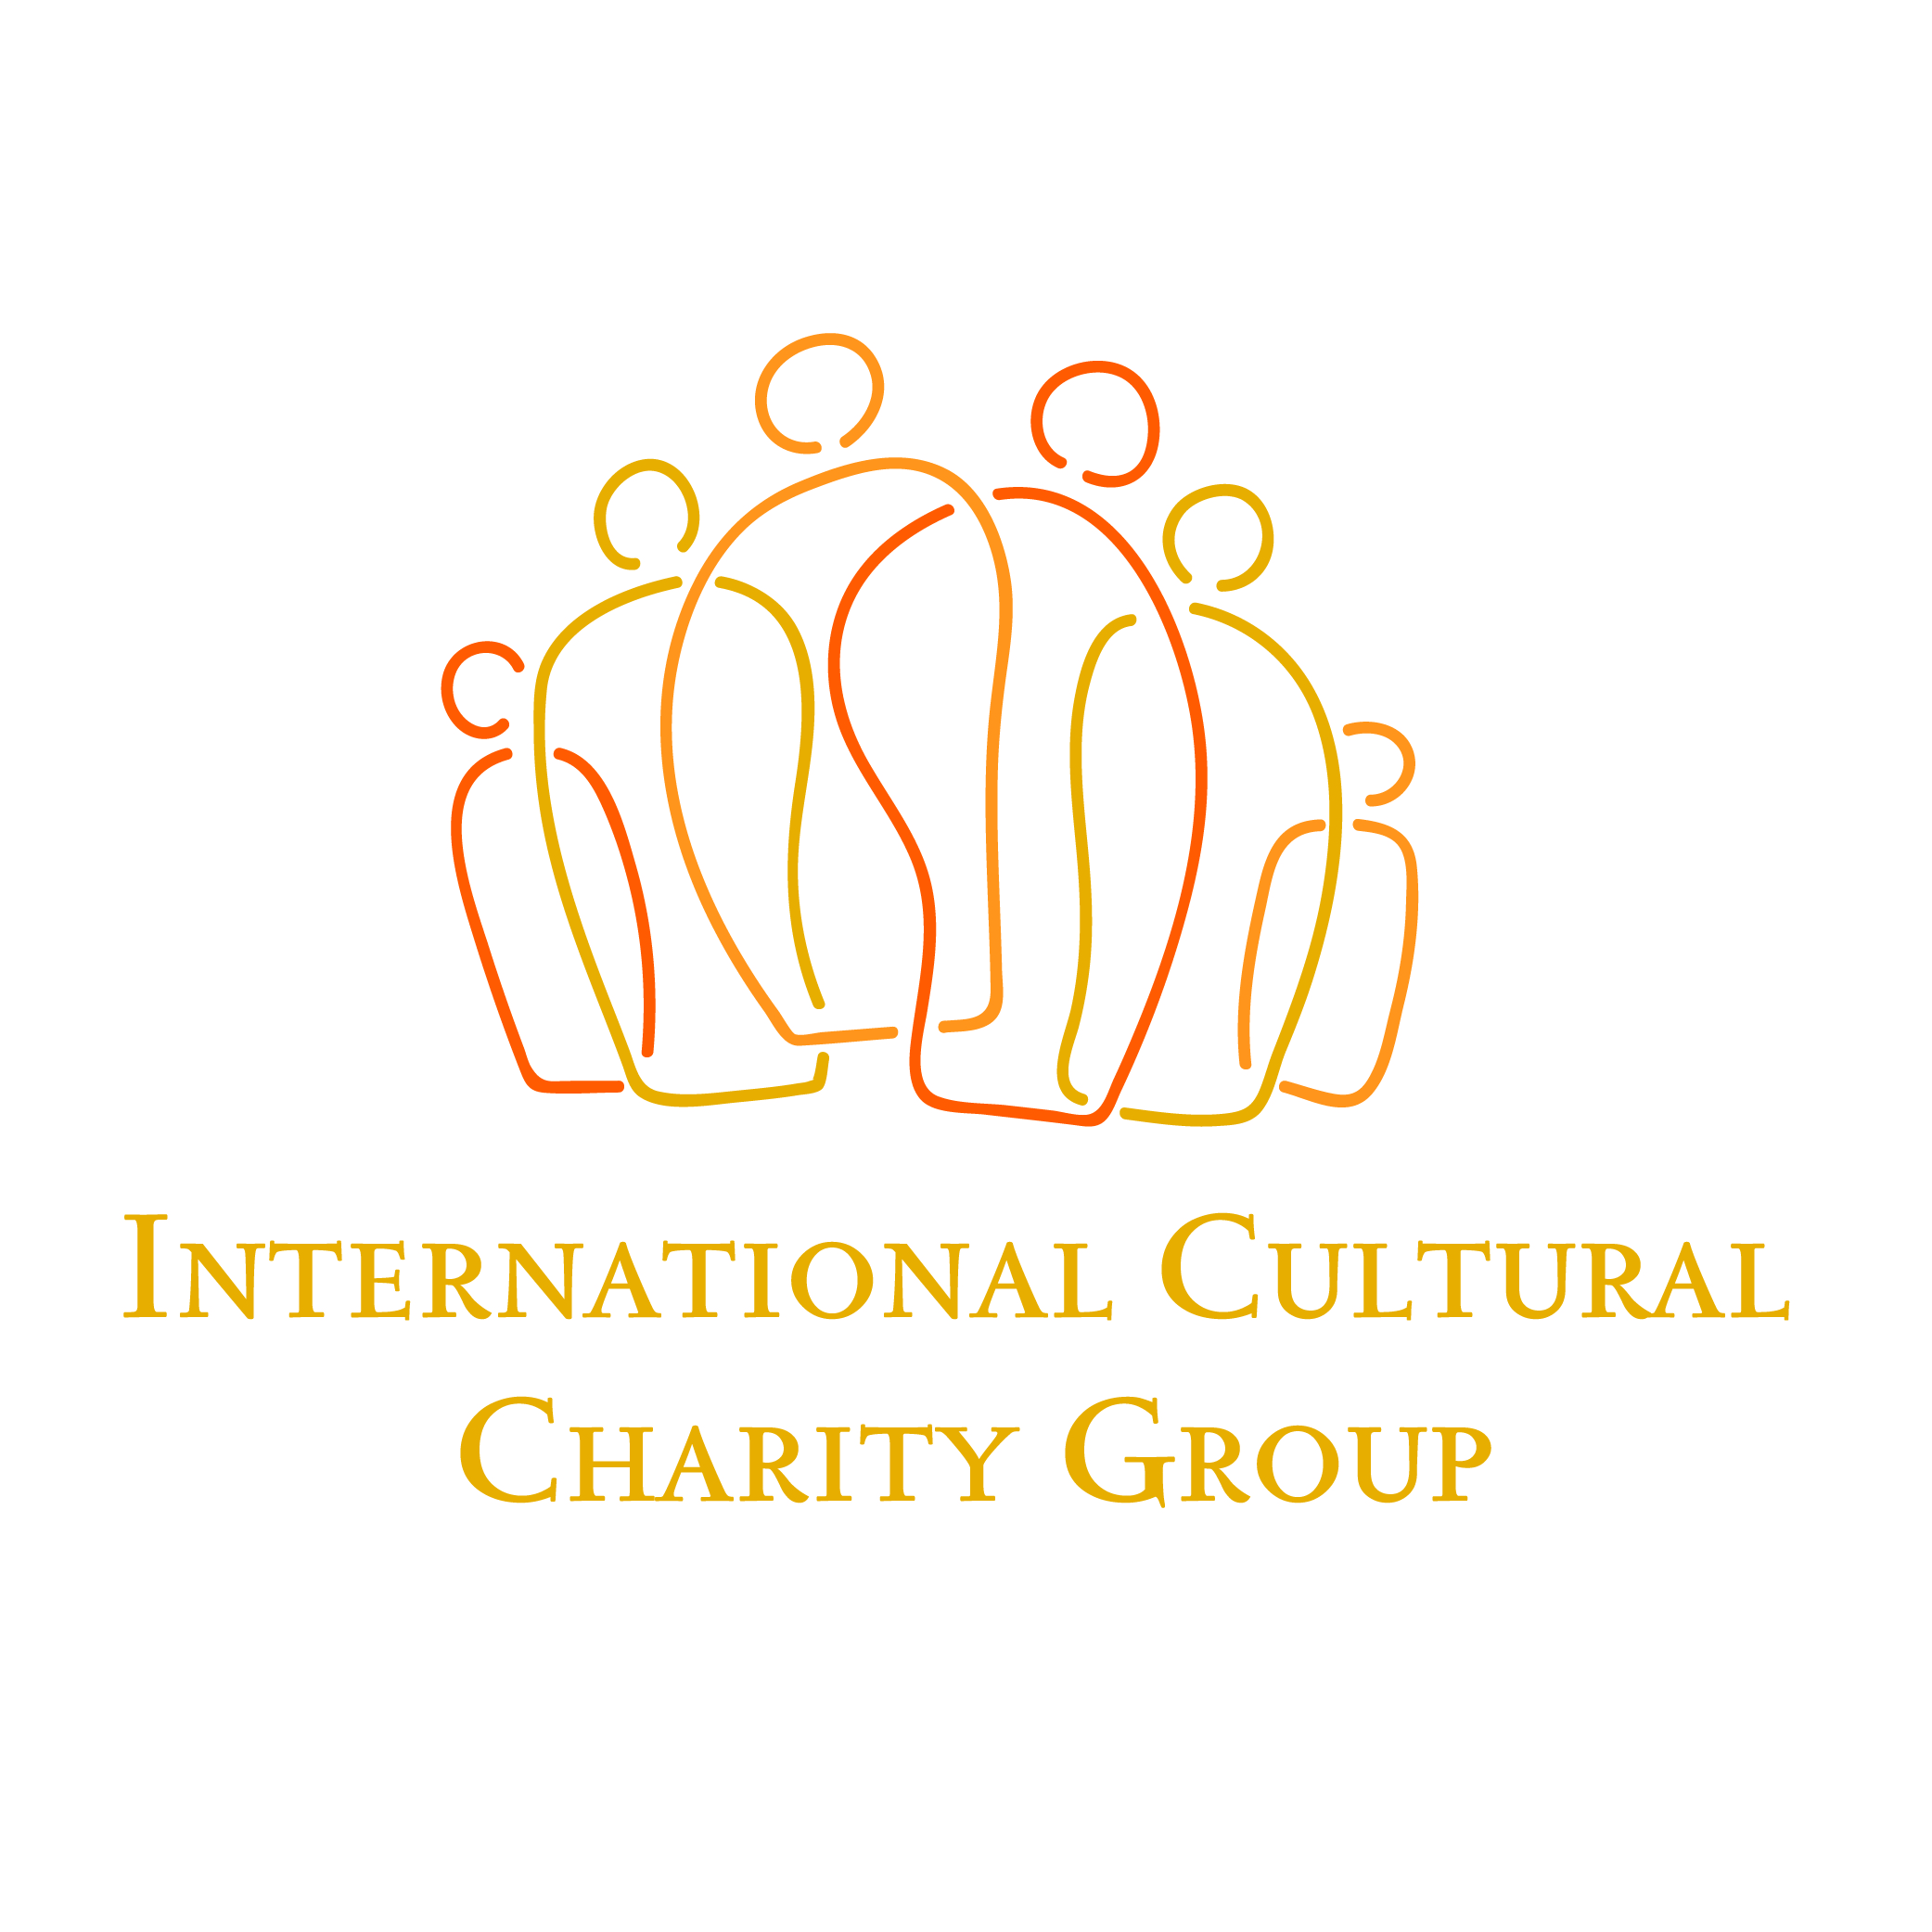 International Cultural Charity Group